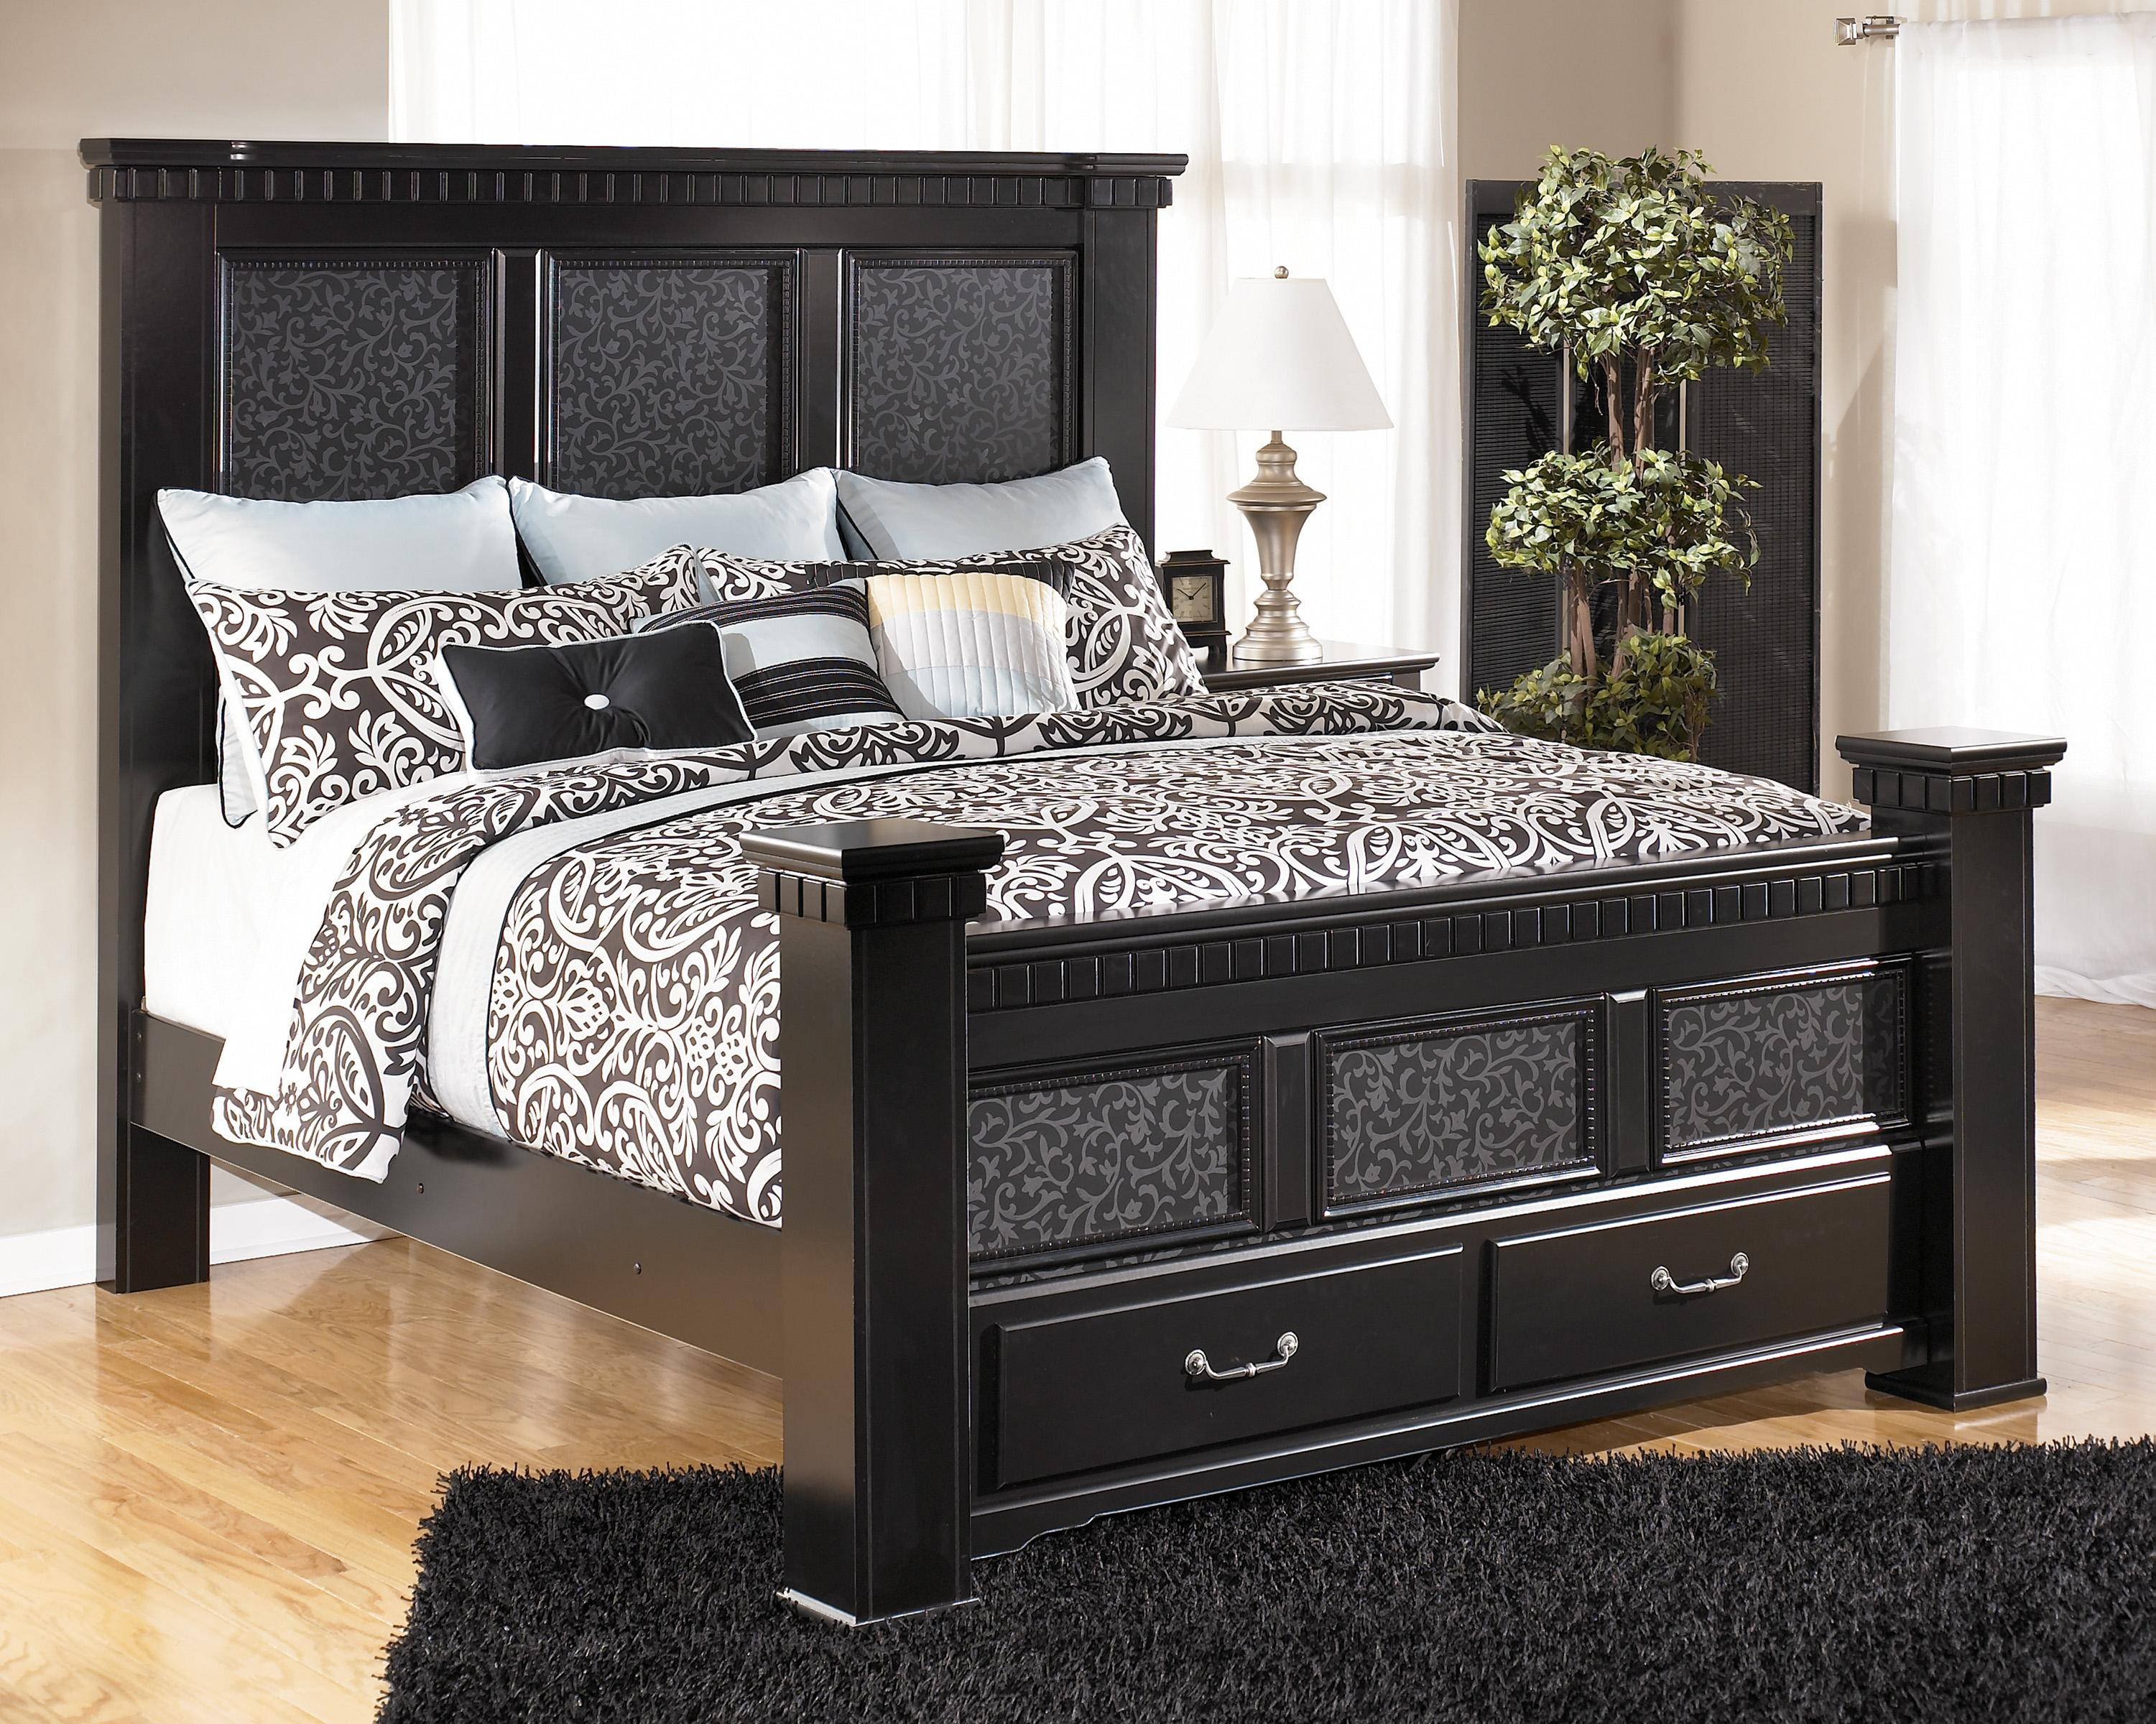 Signature Design by Ashley Cavallino Cal King Mansion Bed with Storage Footboard - Item Number: B291-158+166S+70+95